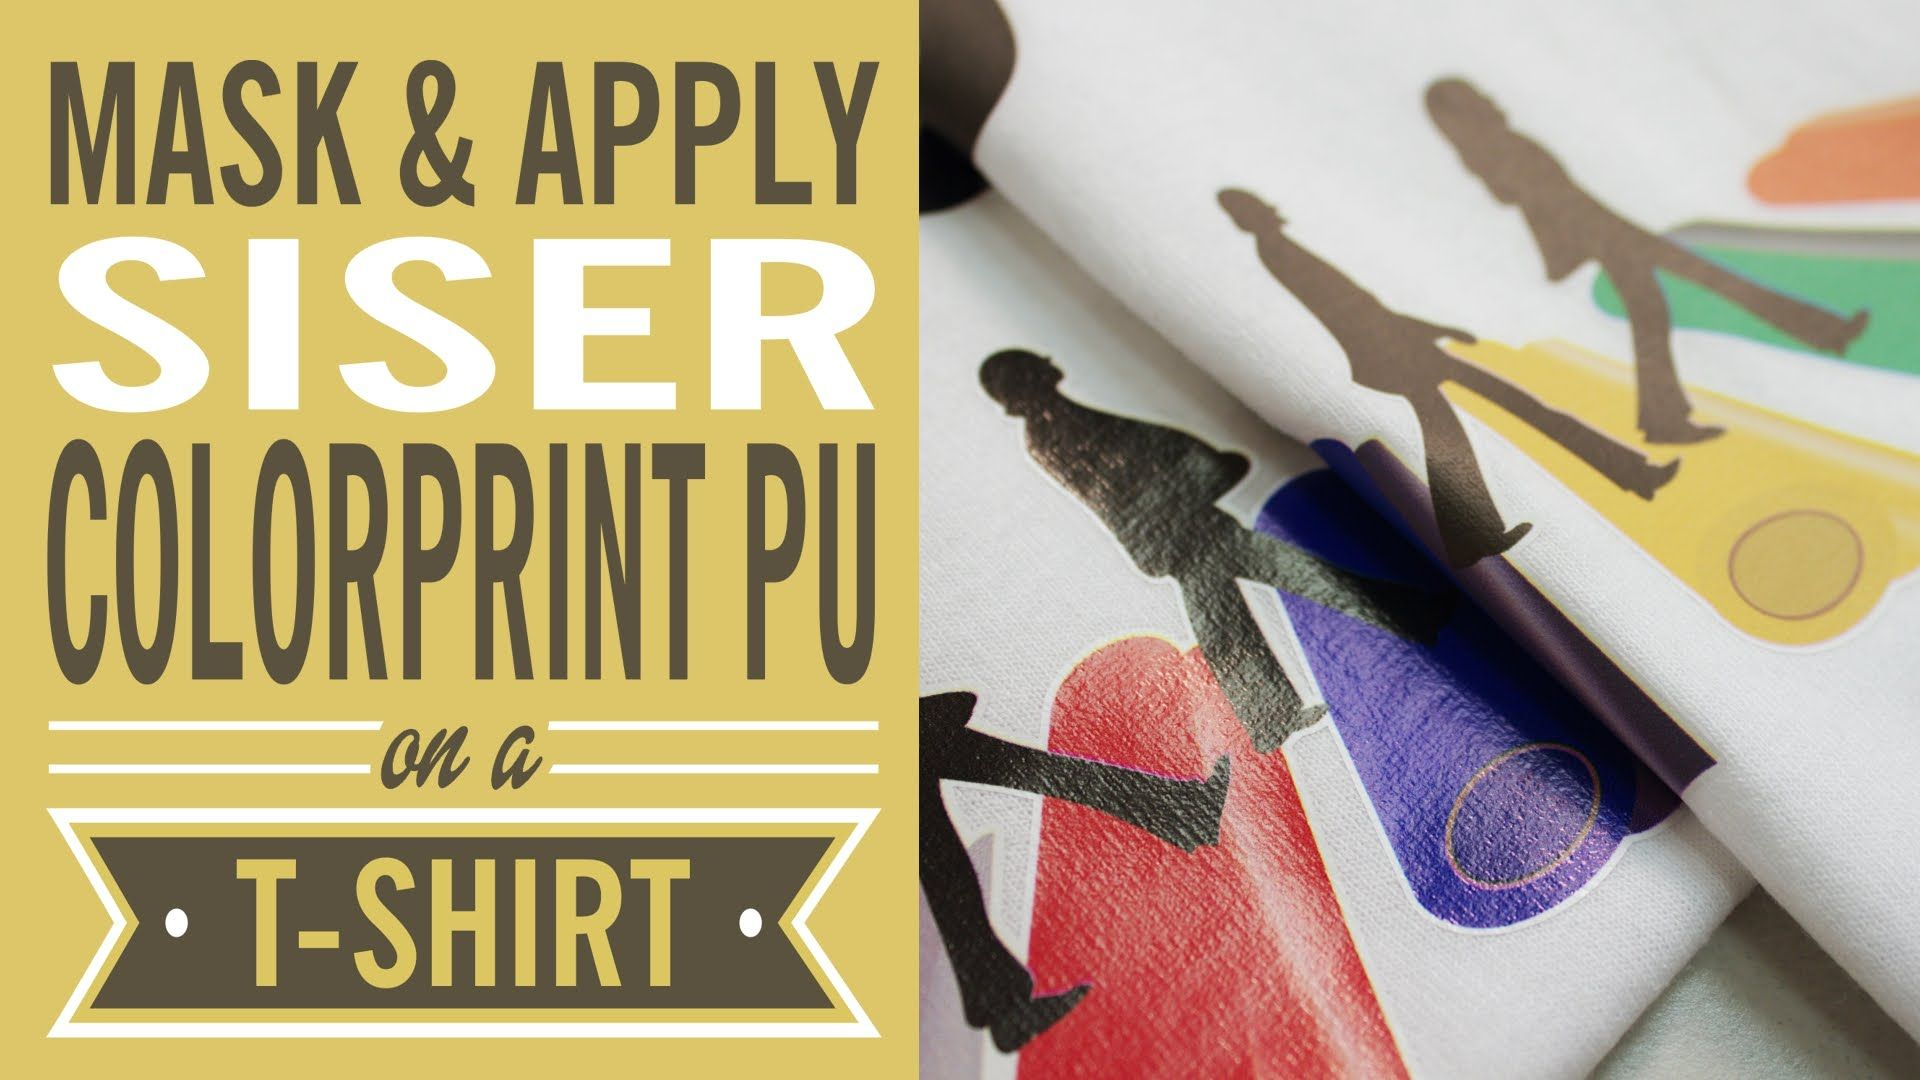 So you've been itching to try your hand at ColorPrint PU by